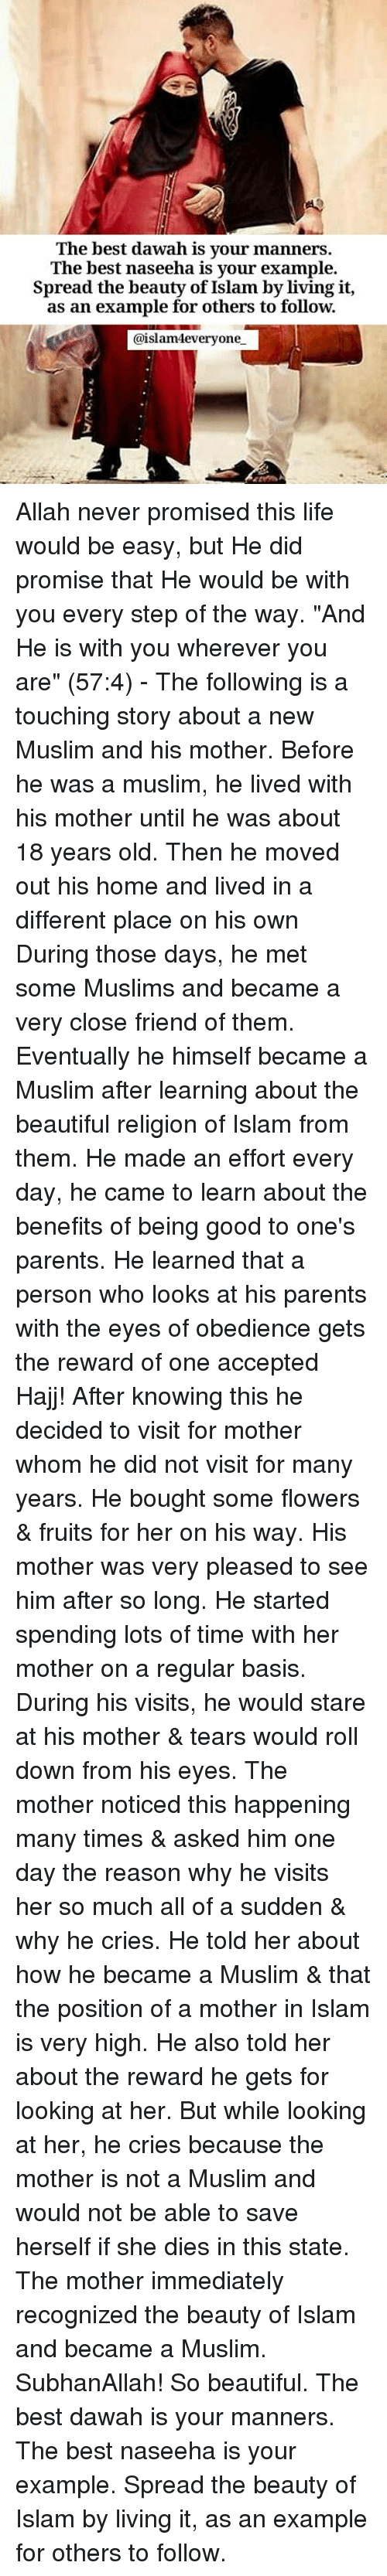 """Spreaded: The best dawah is your manners.  The best naseeha is vour example.  Spread the beauty of Islam by living it,  as an example for others to follow.  @islamteveryone Allah never promised this life would be easy, but He did promise that He would be with you every step of the way. """"And He is with you wherever you are"""" (57:4) - The following is a touching story about a new Muslim and his mother. Before he was a muslim, he lived with his mother until he was about 18 years old. Then he moved out his home and lived in a different place on his own During those days, he met some Muslims and became a very close friend of them. Eventually he himself became a Muslim after learning about the beautiful religion of Islam from them. He made an effort every day, he came to learn about the benefits of being good to one's parents. He learned that a person who looks at his parents with the eyes of obedience gets the reward of one accepted Hajj! After knowing this he decided to visit for mother whom he did not visit for many years. He bought some flowers & fruits for her on his way. His mother was very pleased to see him after so long. He started spending lots of time with her mother on a regular basis. During his visits, he would stare at his mother & tears would roll down from his eyes. The mother noticed this happening many times & asked him one day the reason why he visits her so much all of a sudden & why he cries. He told her about how he became a Muslim & that the position of a mother in Islam is very high. He also told her about the reward he gets for looking at her. But while looking at her, he cries because the mother is not a Muslim and would not be able to save herself if she dies in this state. The mother immediately recognized the beauty of Islam and became a Muslim. SubhanAllah! So beautiful. The best dawah is your manners. The best naseeha is your example. Spread the beauty of Islam by living it, as an example for others to follow."""